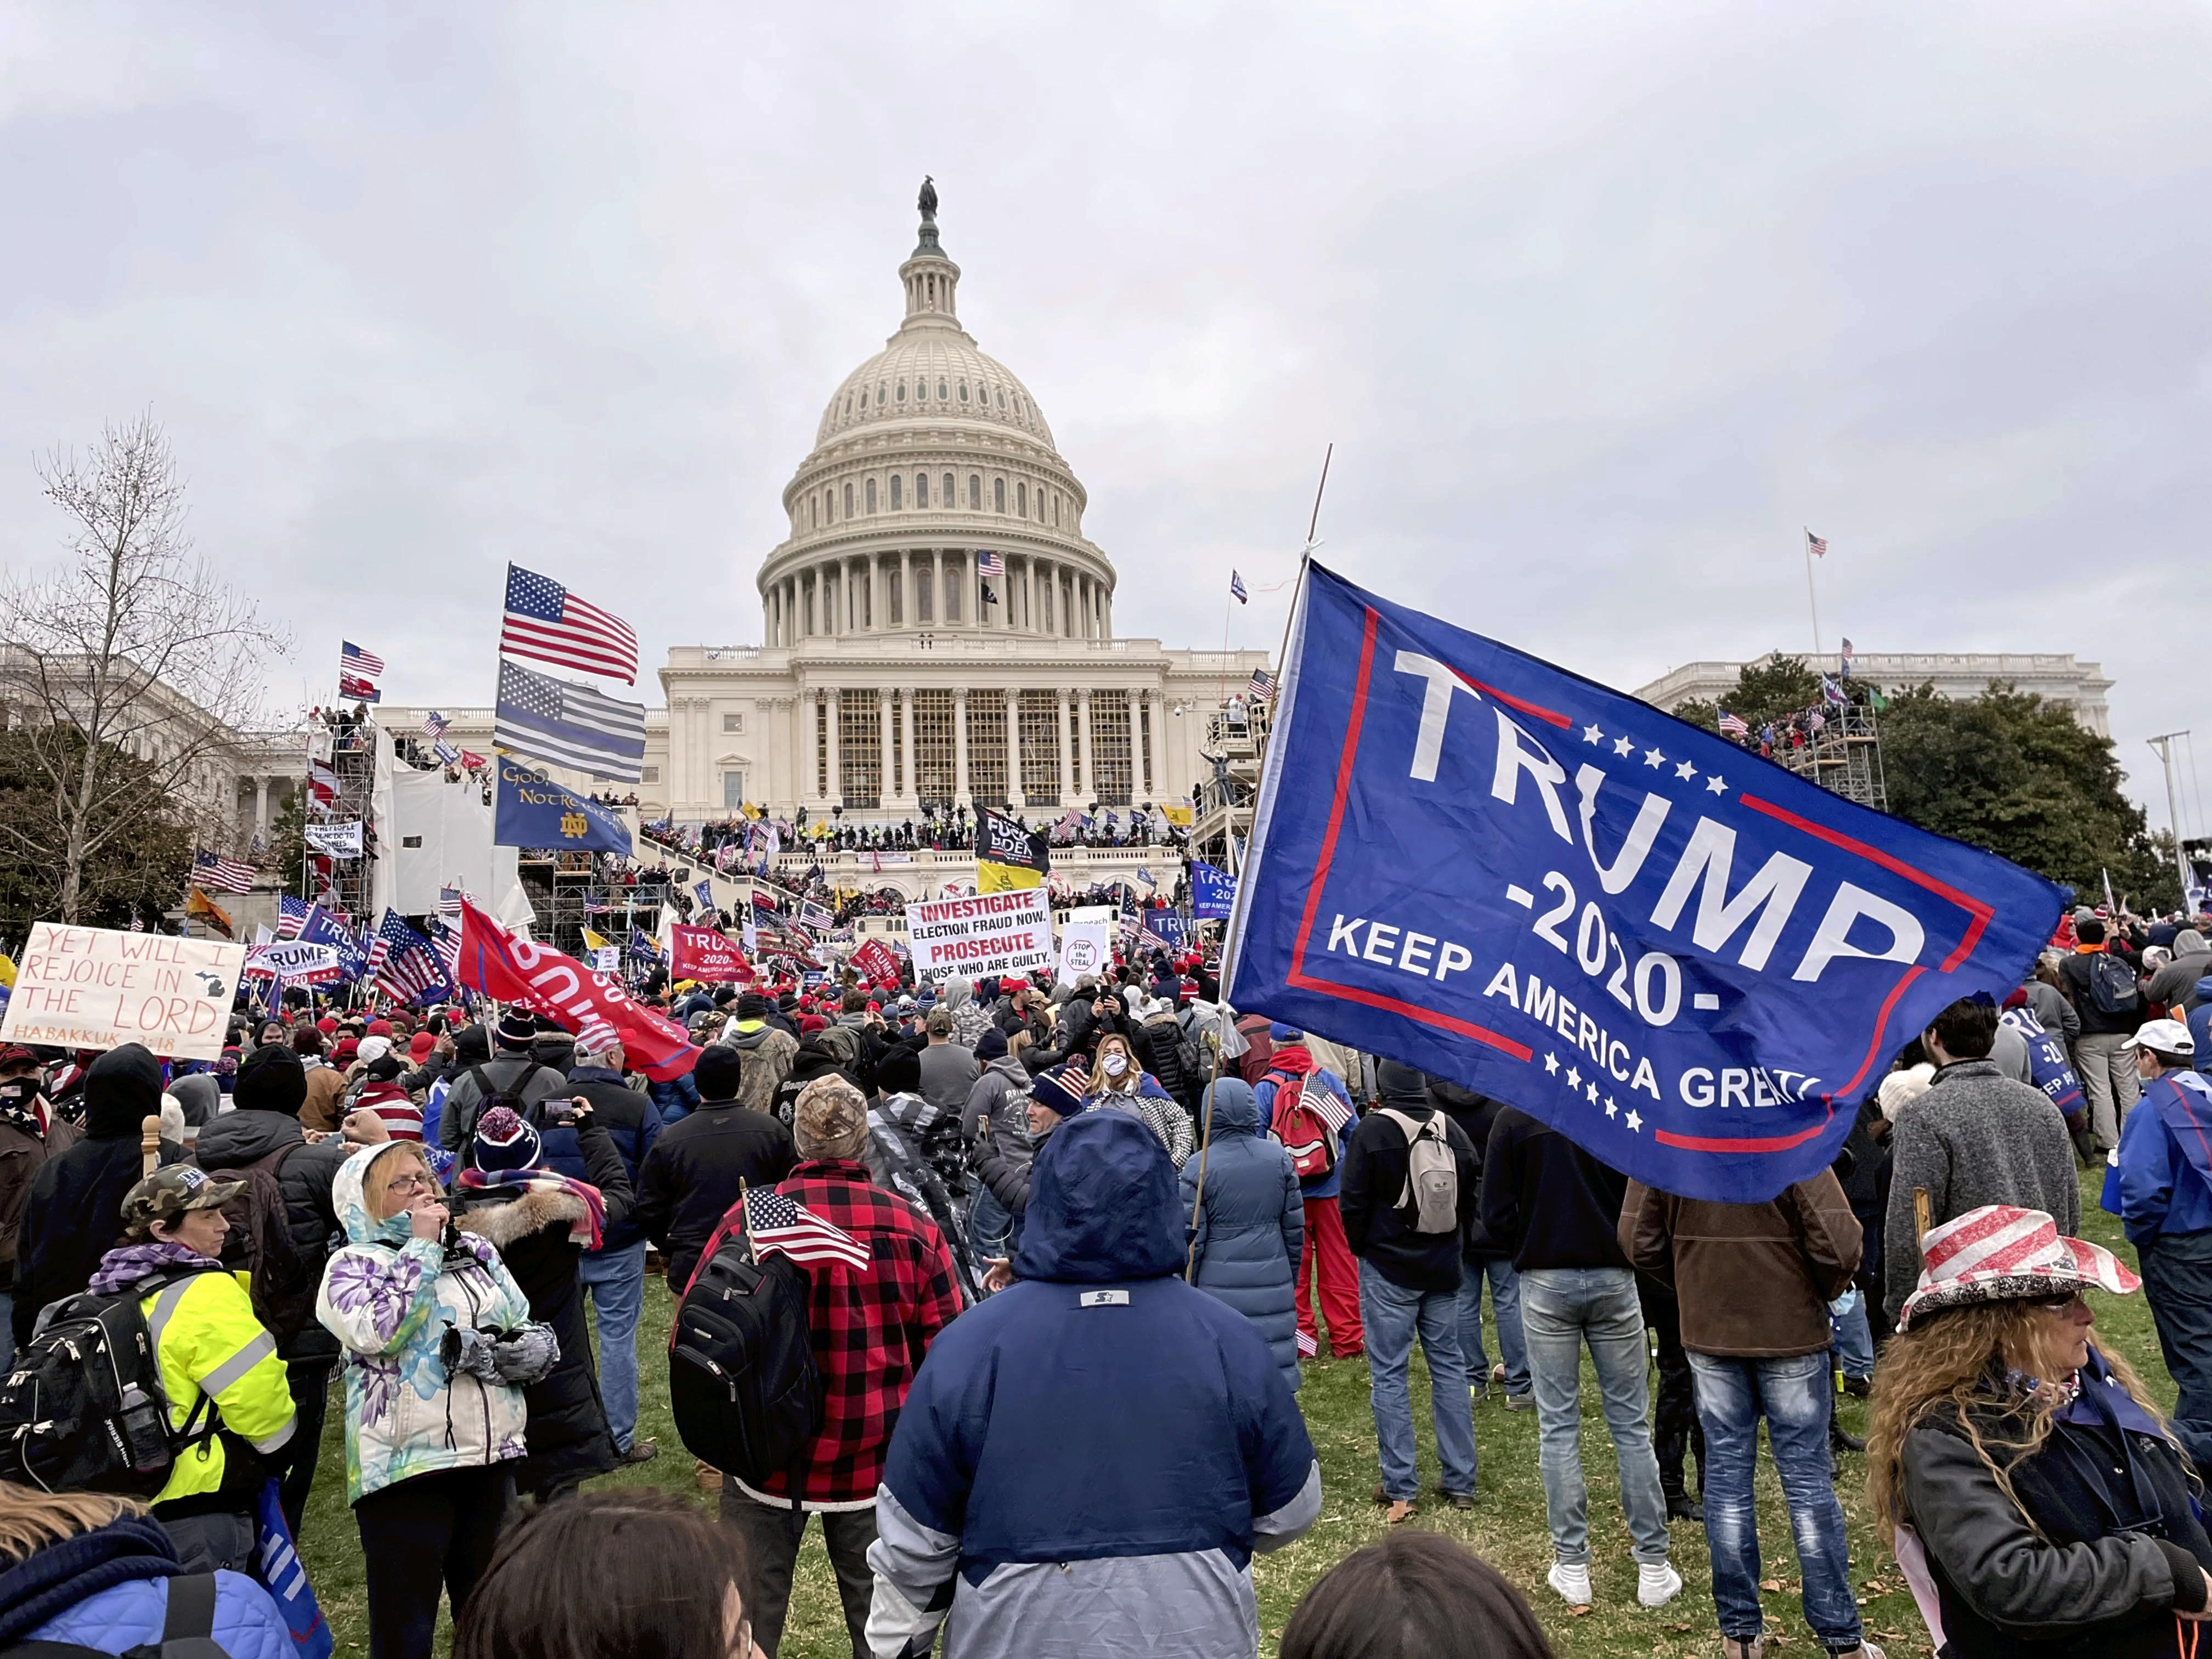 Pro-Trump protesters gather at the U.S.Capitol Hill to protest against Biden's certification in Washington, D.C. on Jan. 6, 2021. A violent pro- Trump protesters stormed into the U.S. Capitol, which has left four people killed during the turmoil at the U.S. Capitol.